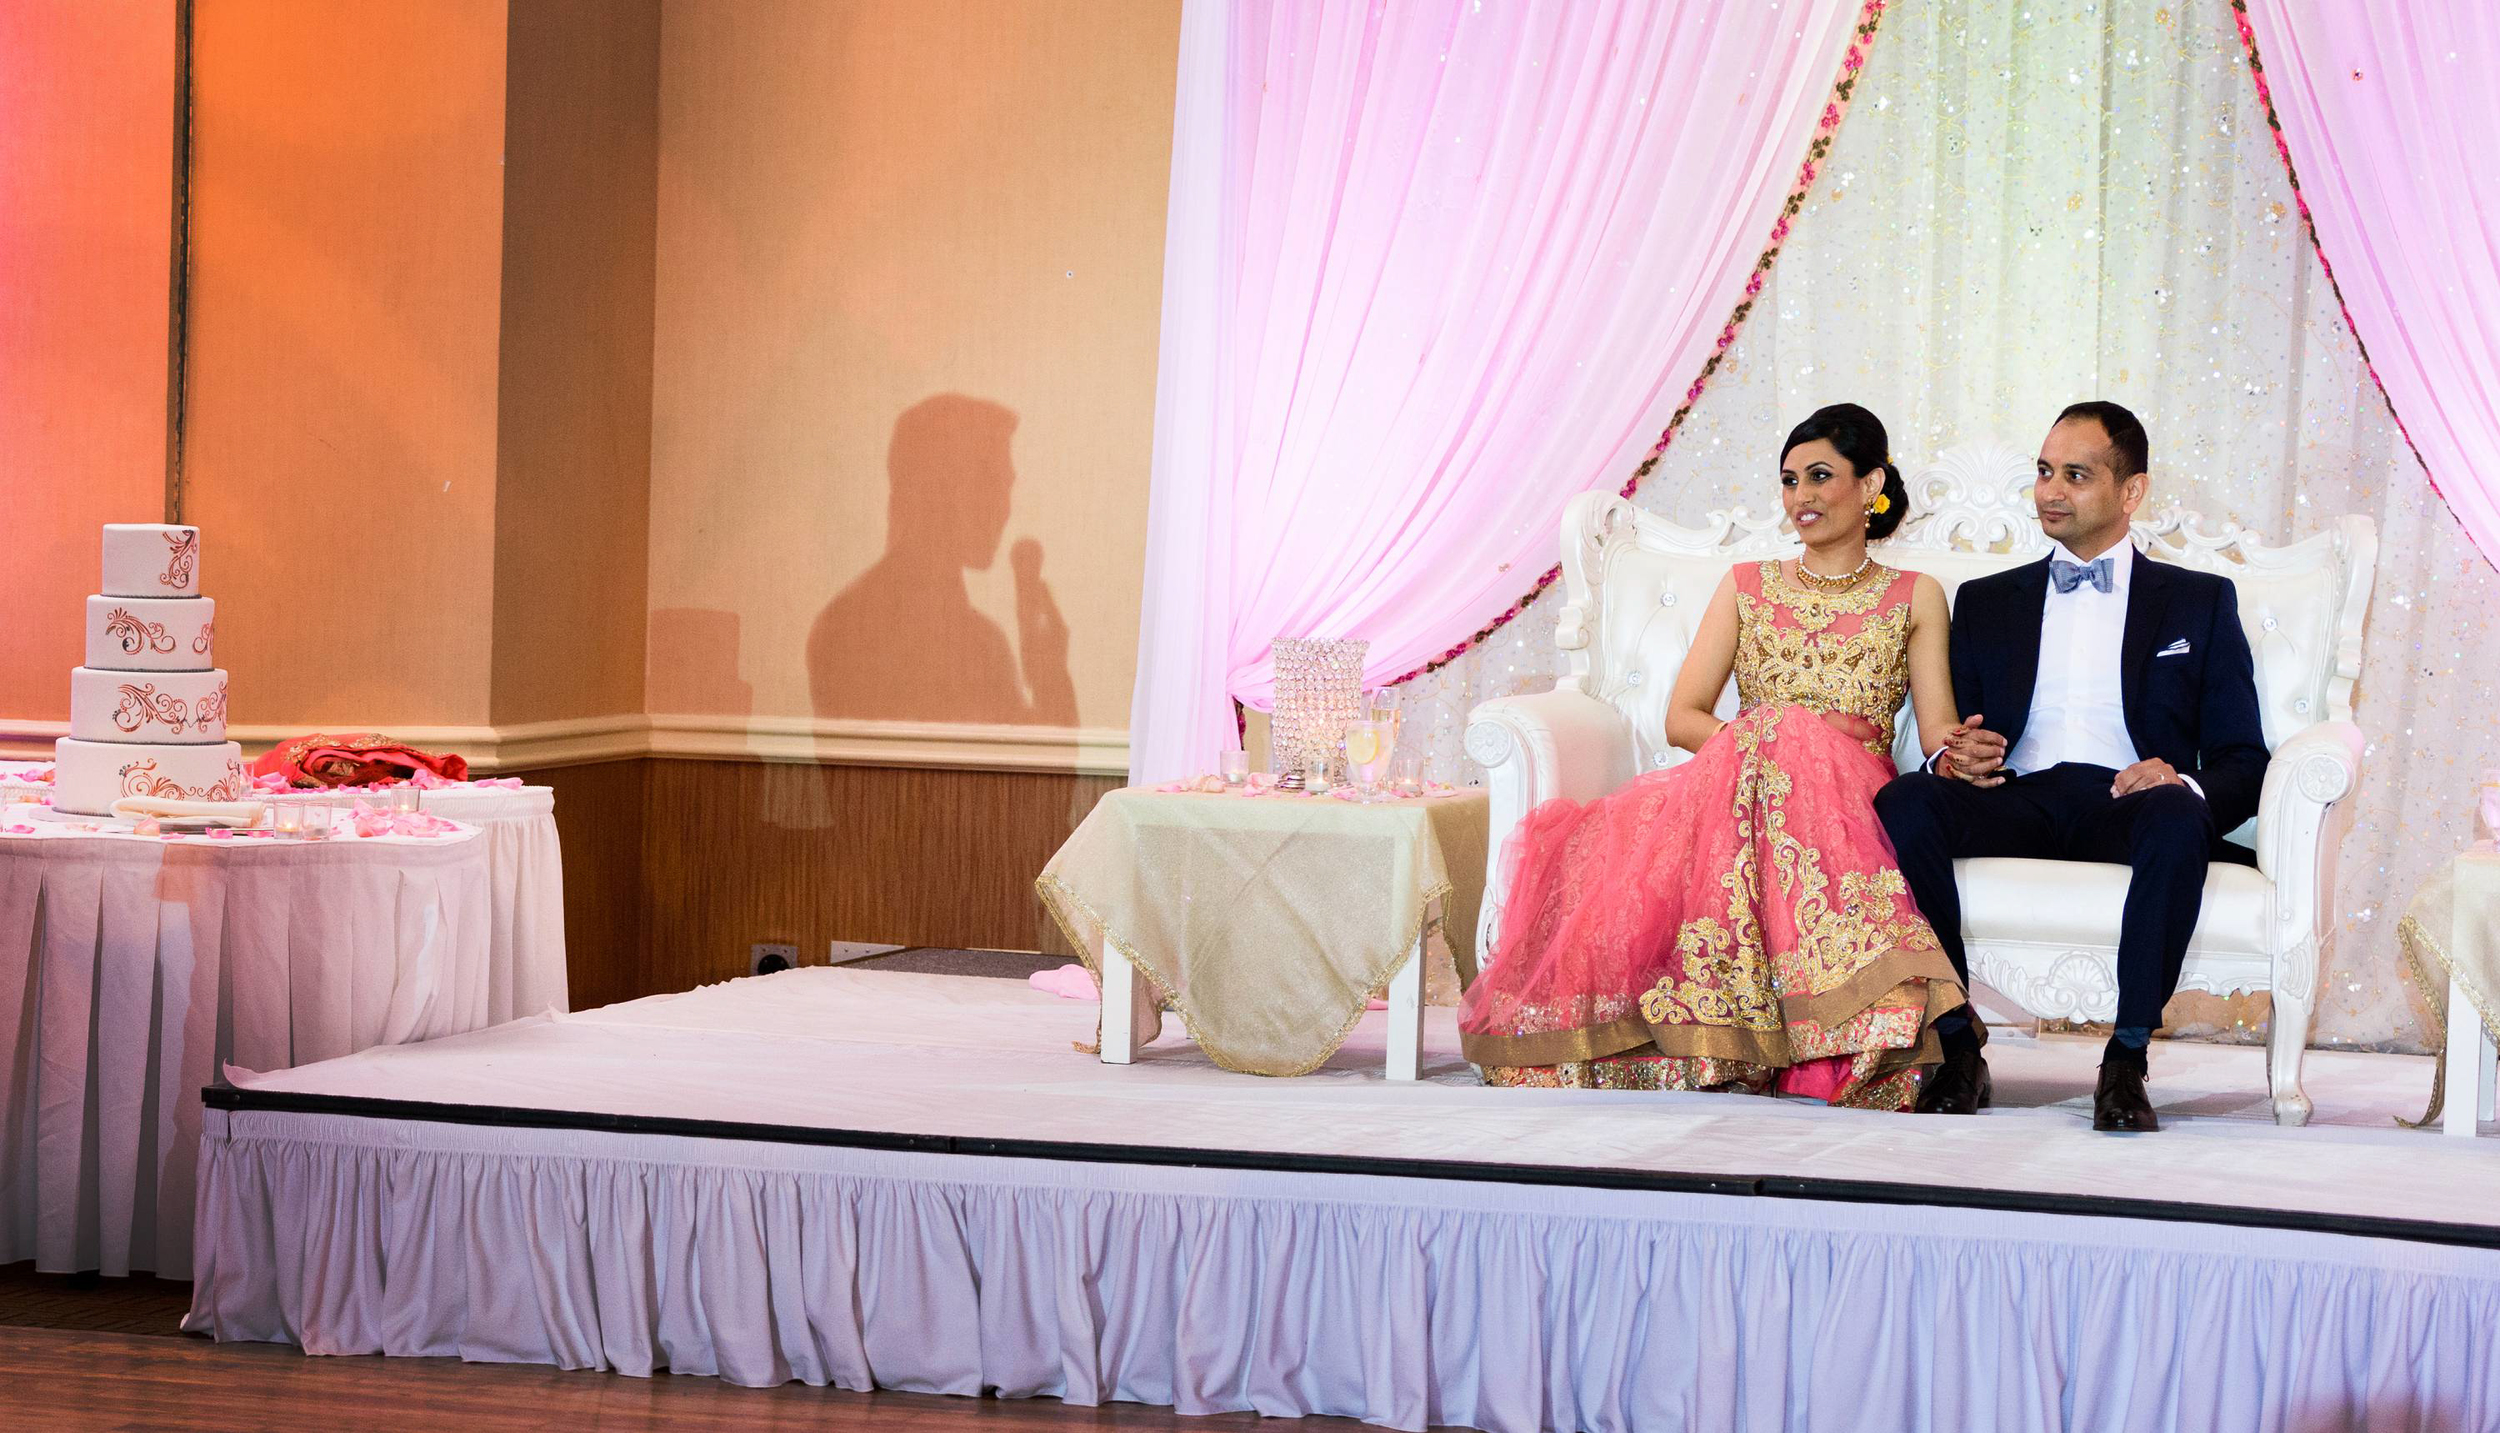 This was photographed during reception; bride's brother was giving a toasting speech. Photographing weddings with different & creative perspective is one of our main goals during wedding photography